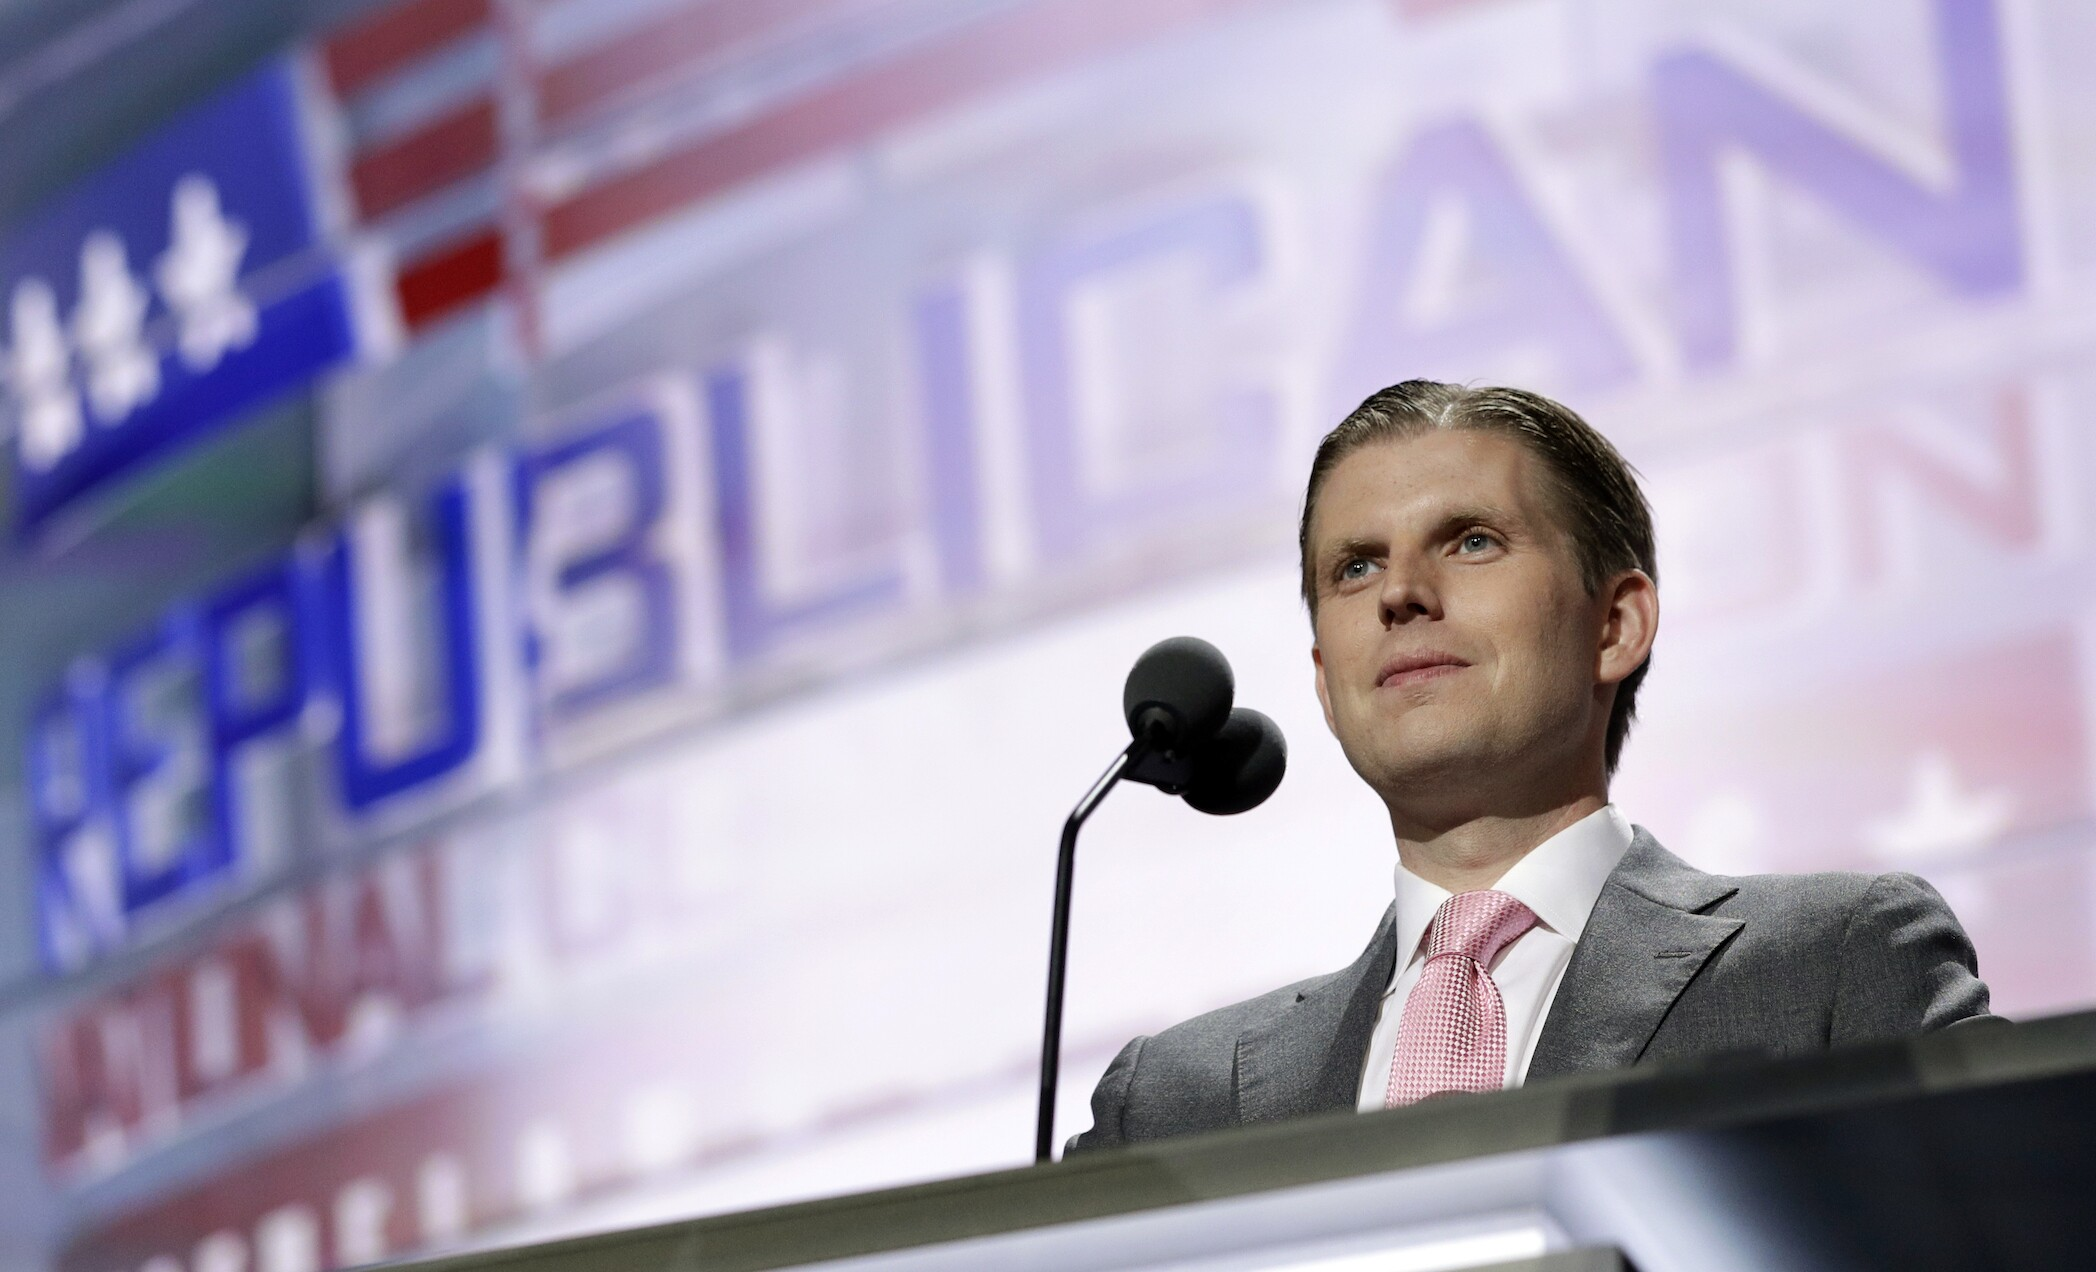 Eric Trump: Dad keeping promises, 'already making America great'